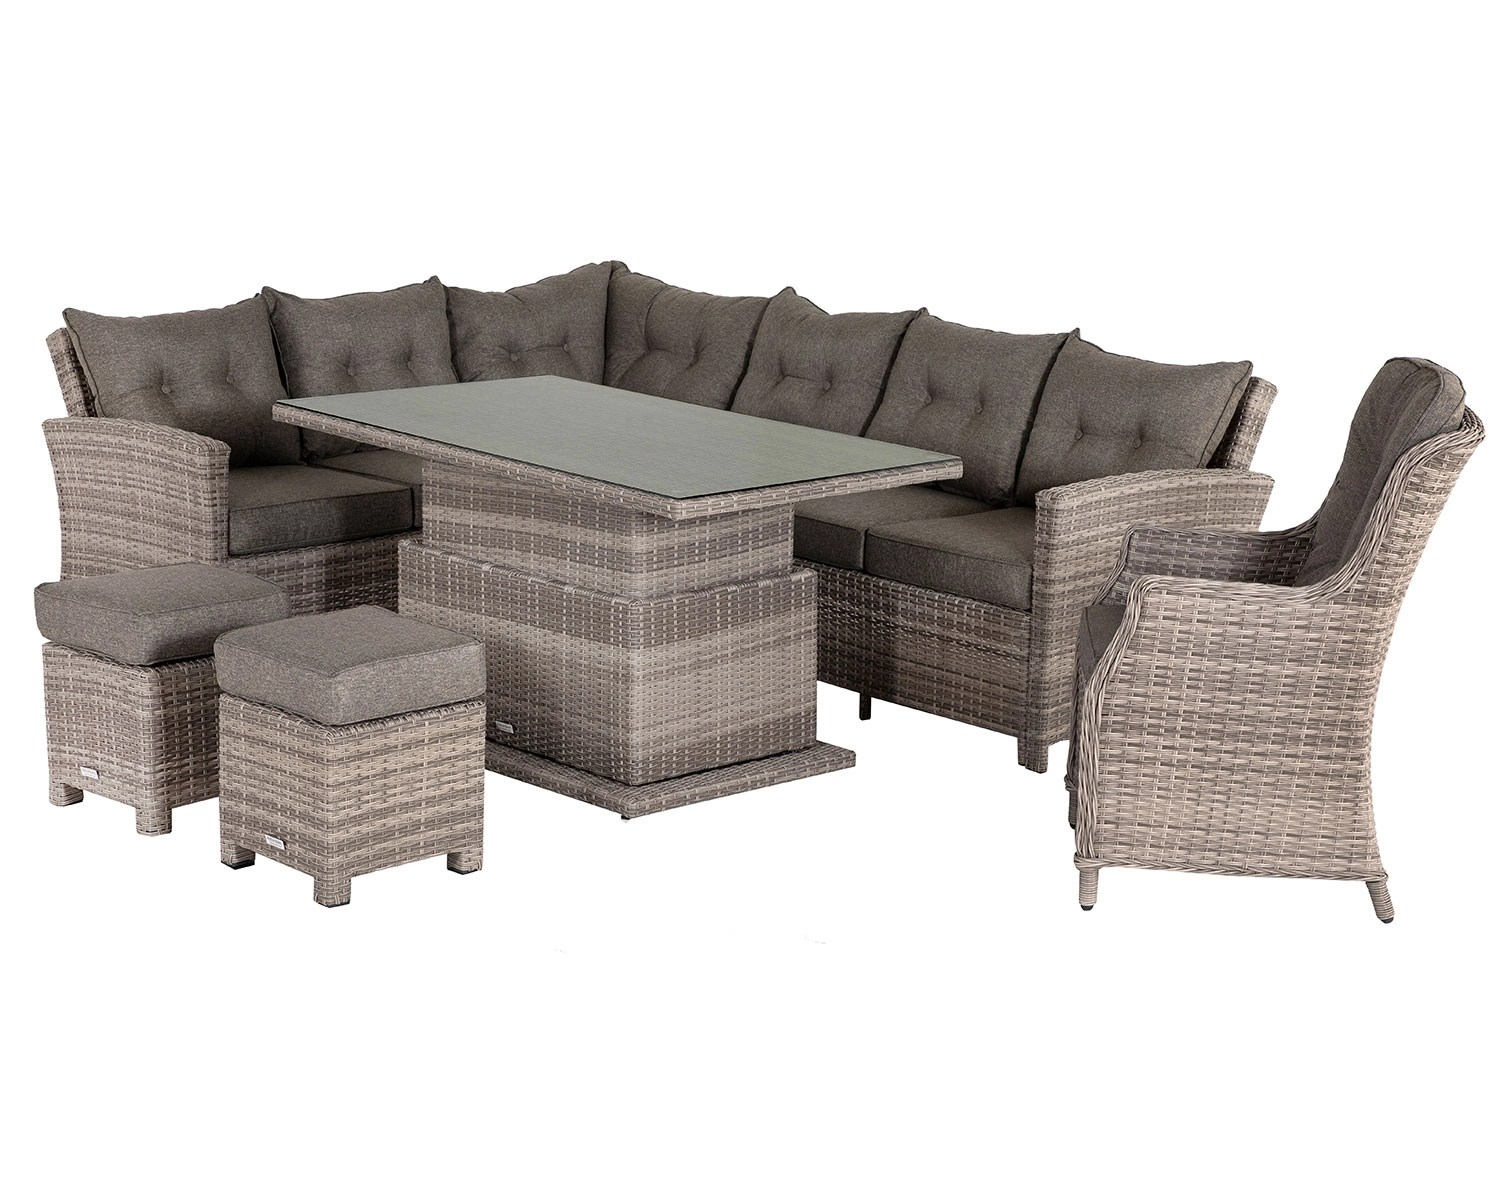 Garden Rattan Sofa Uk Rattan And Garden Accessories Uk Rattan Furniture Rattan